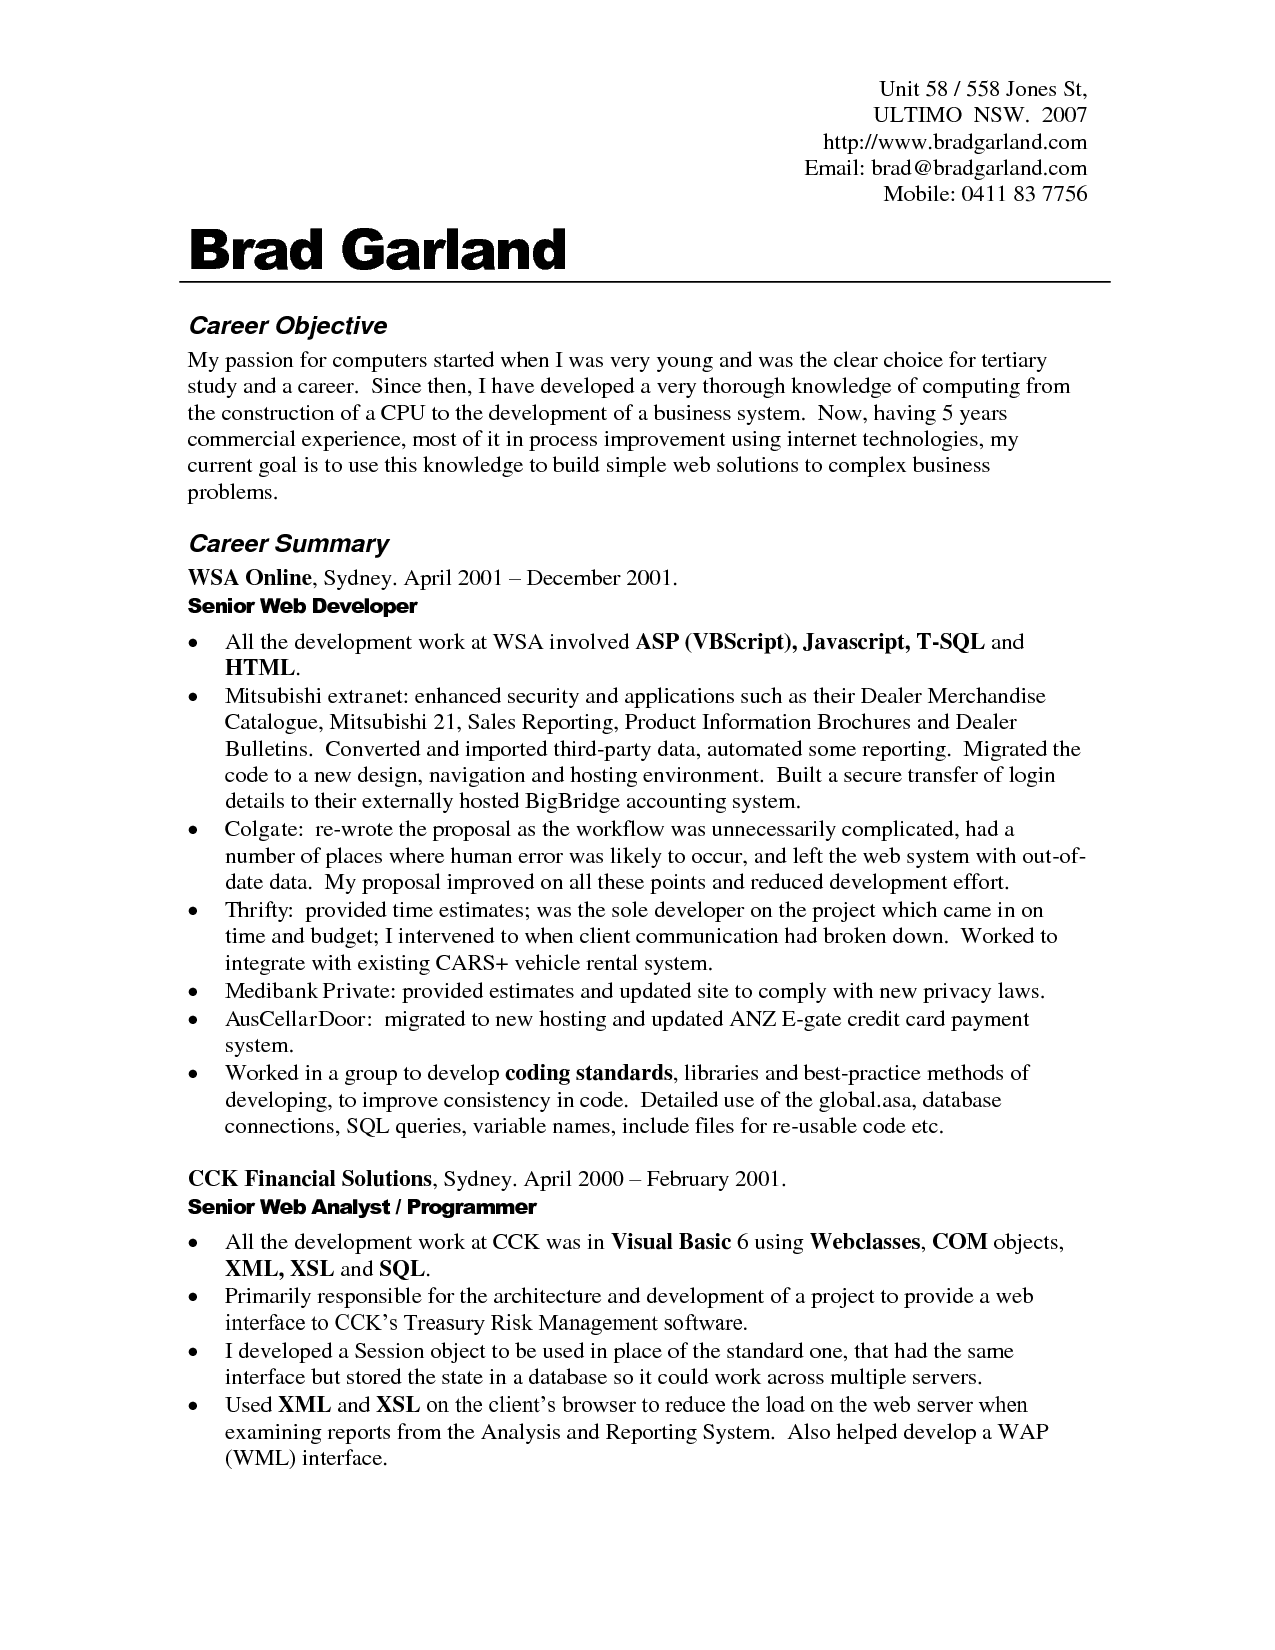 Resume Work Objective Examples - Examples of Resumes